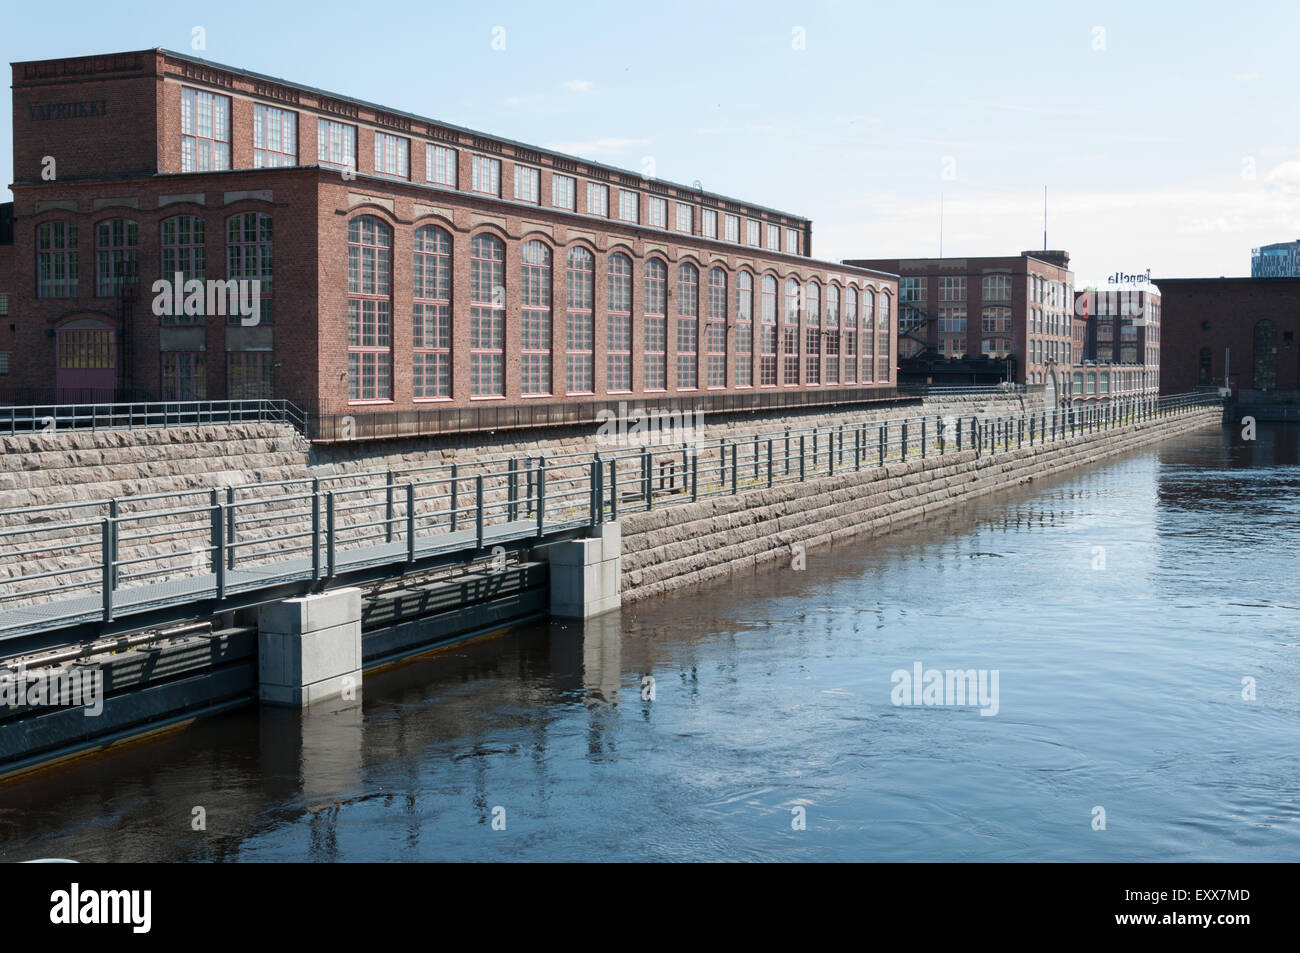 A part of the old cotton mills in Tampere Finland - Stock Image